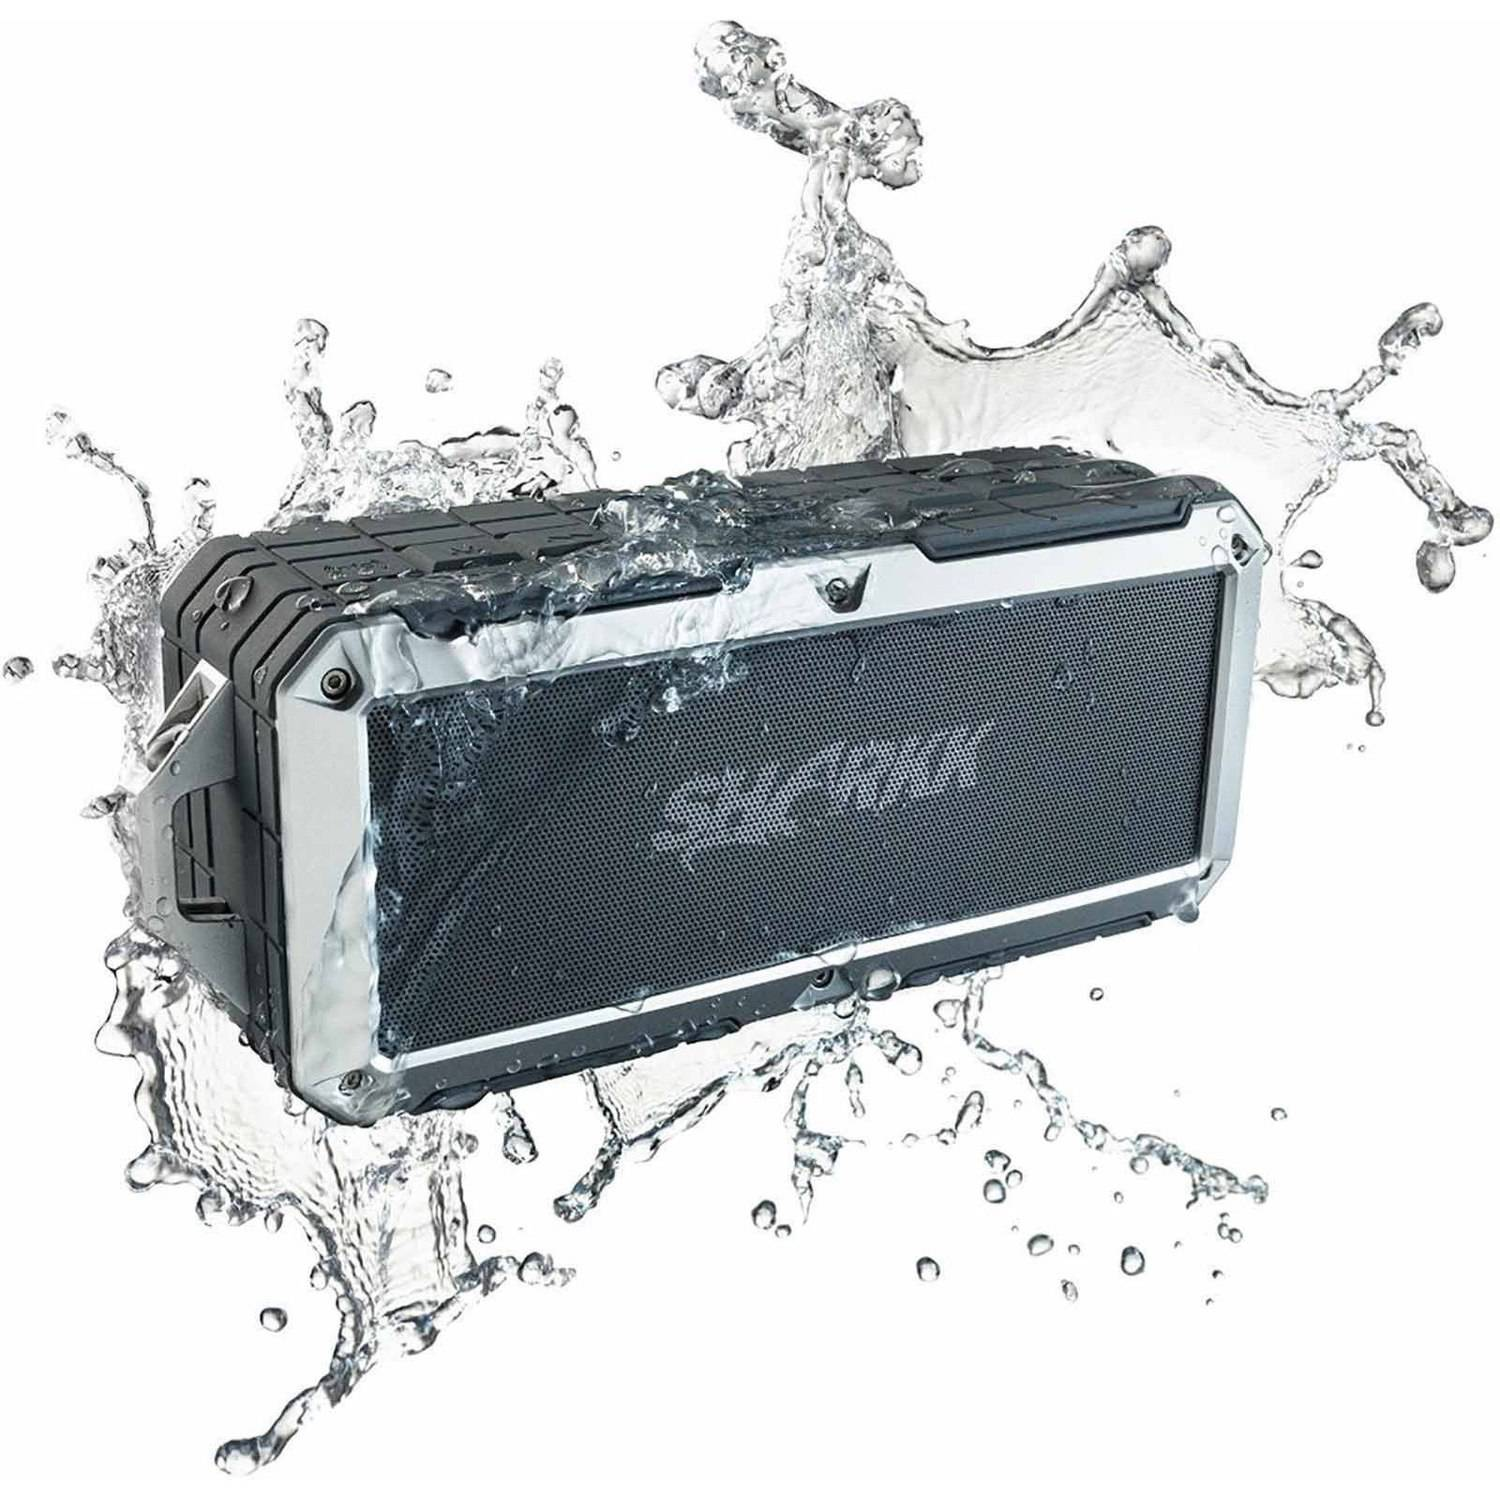 SHARKK 2o 8W Waterproof Portable Wireless Bluetooth Speaker